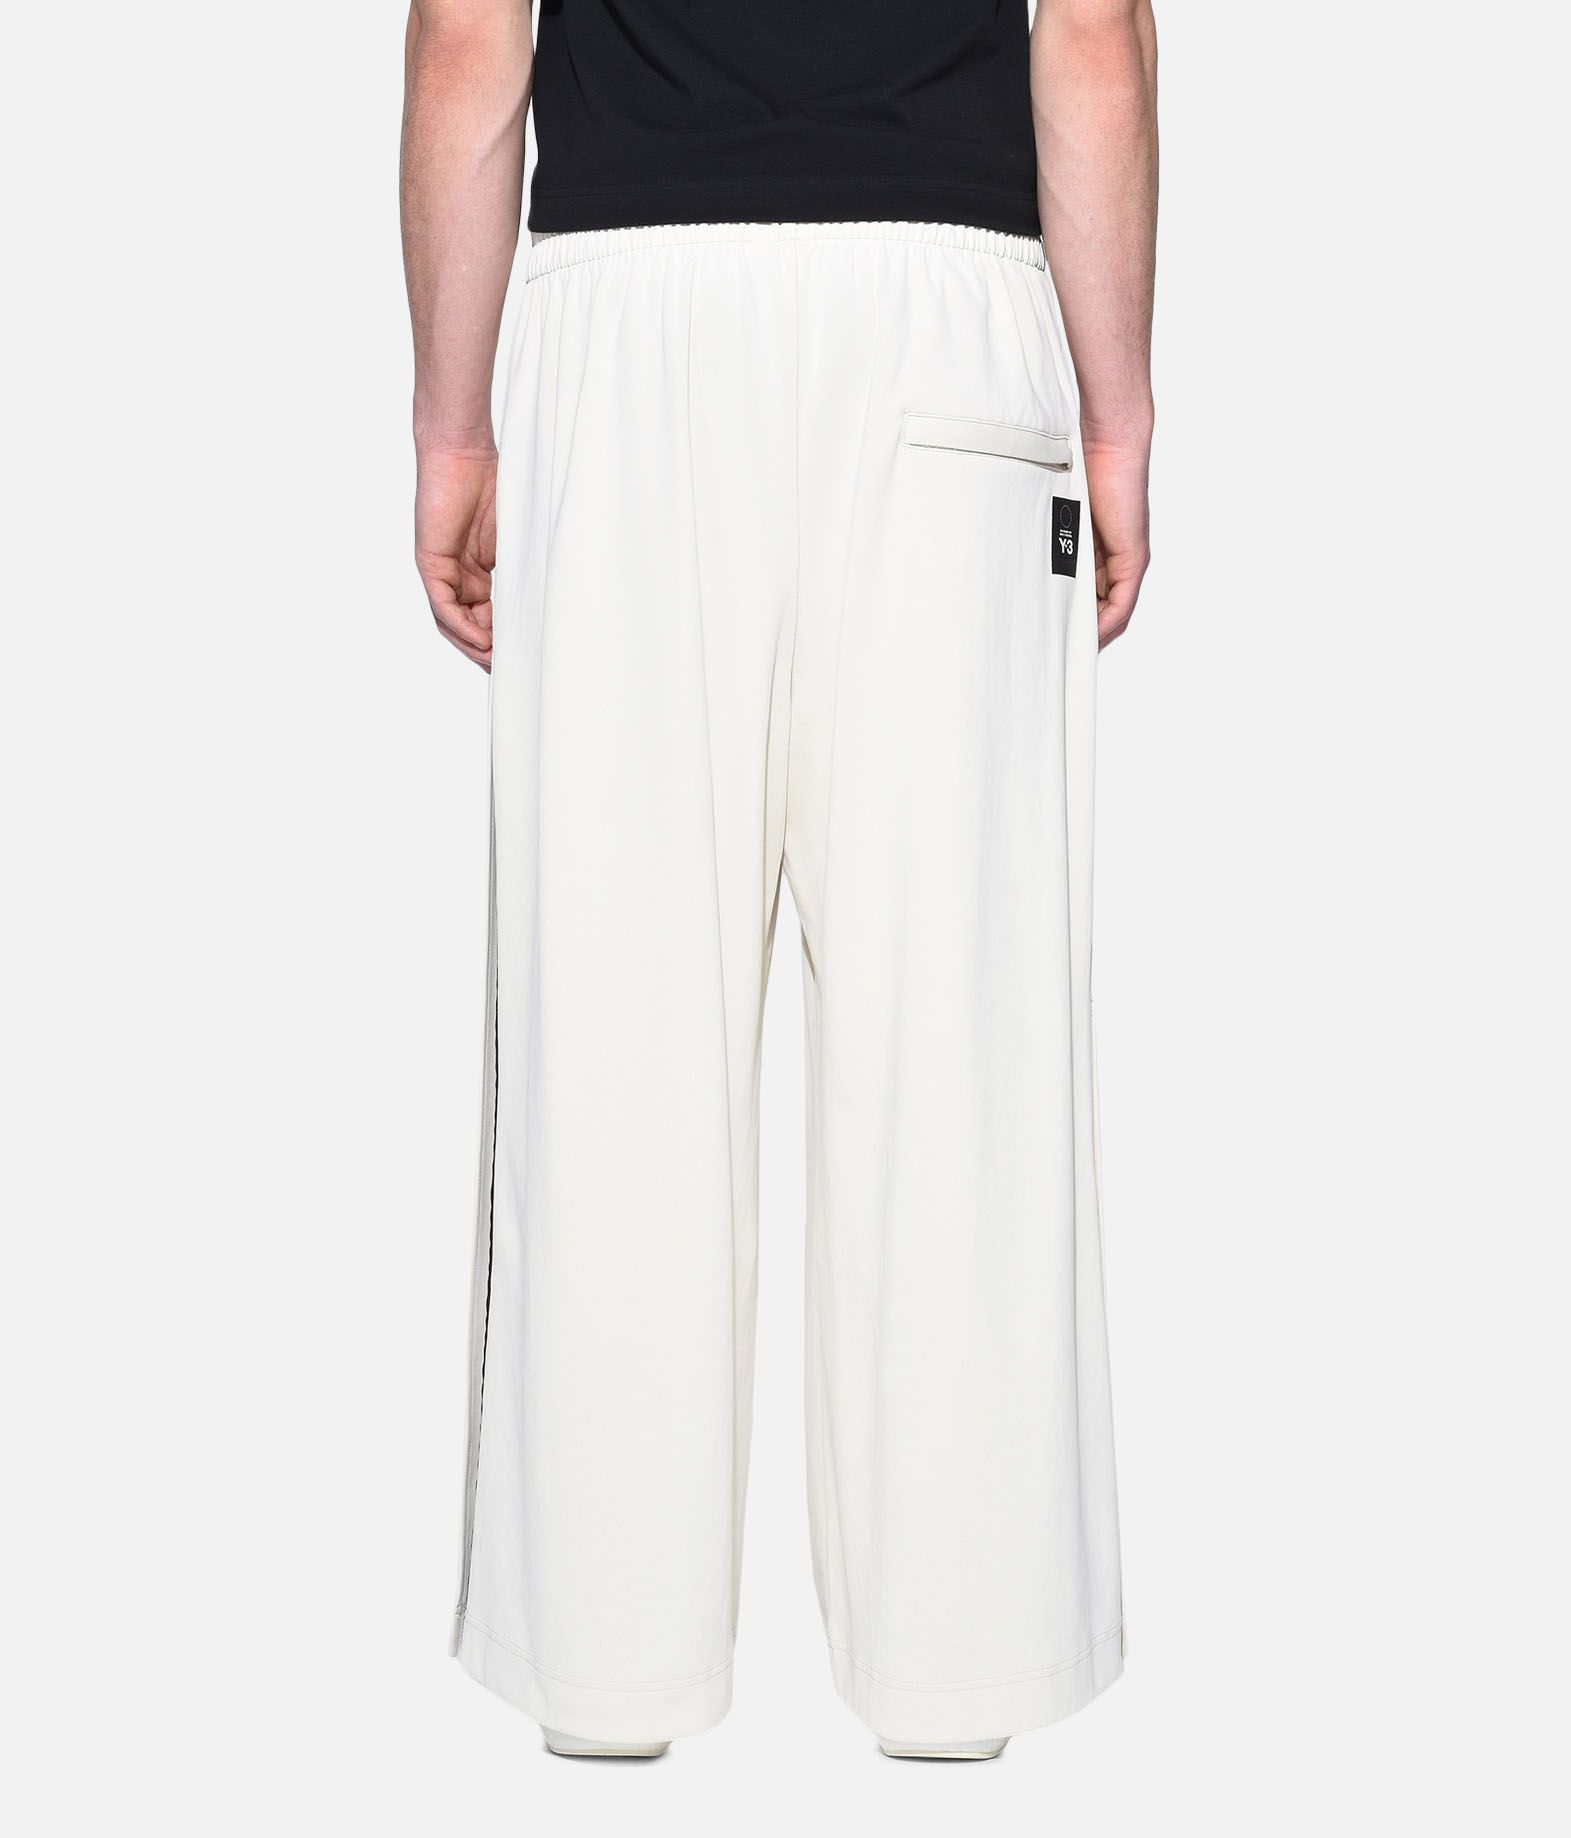 Y-3 Y-3 3-Stripes Matte Snap Track Pants Track pant Man d